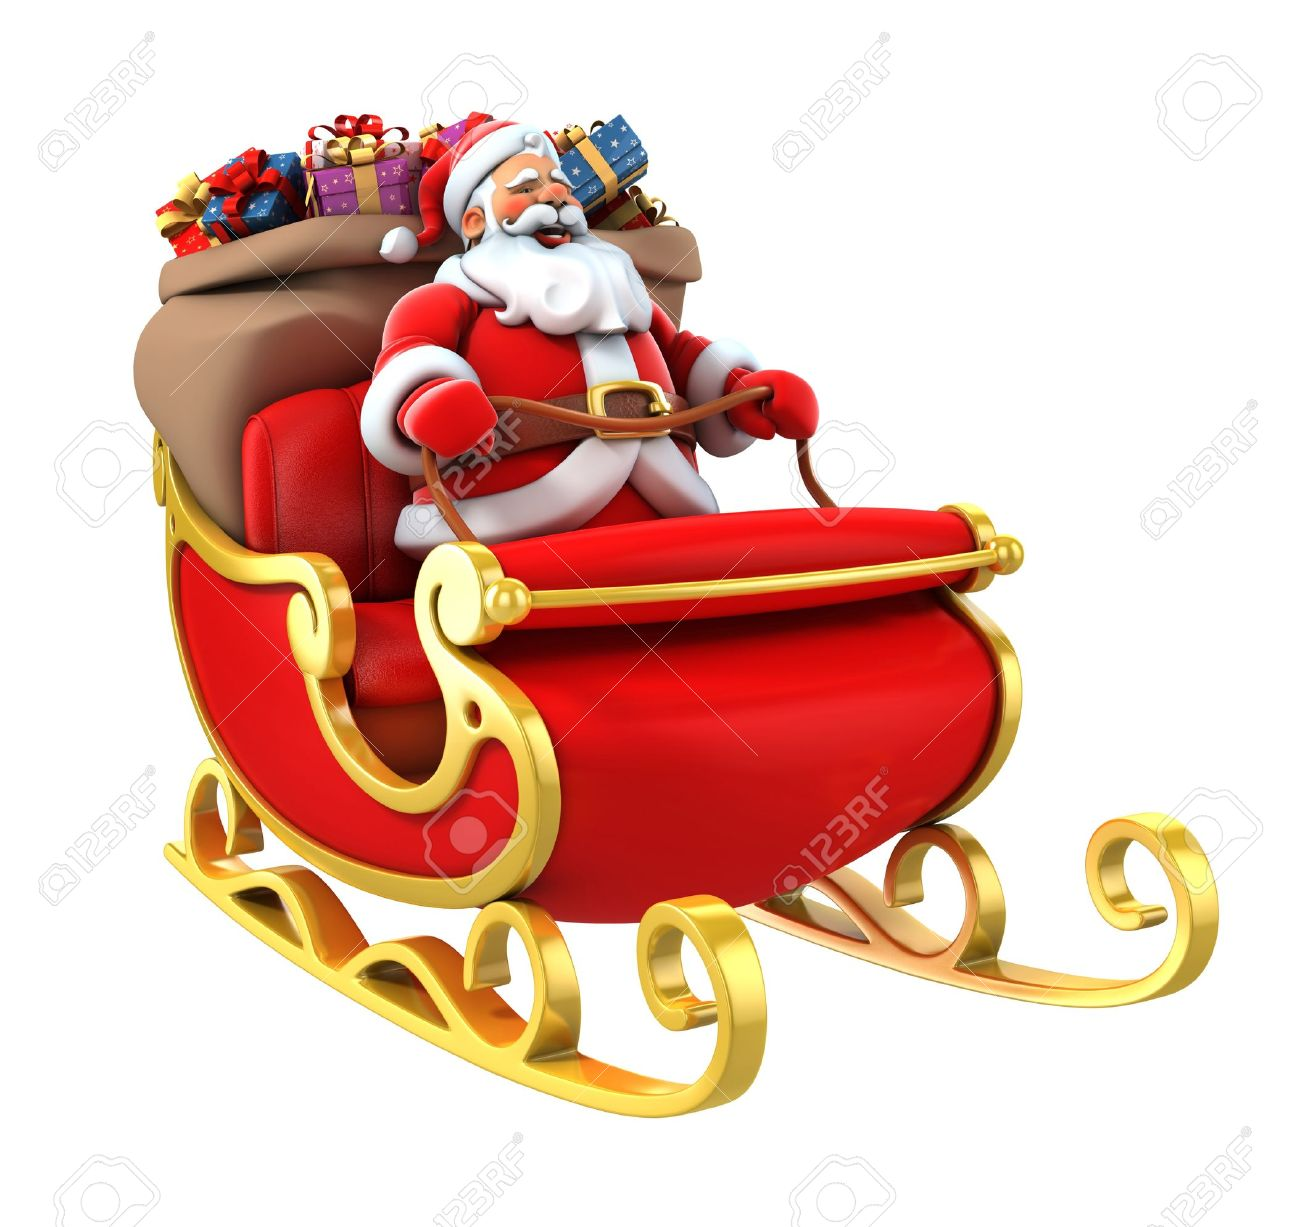 Santa sleigh ornament - Stock Photo Santa Sledge Deers